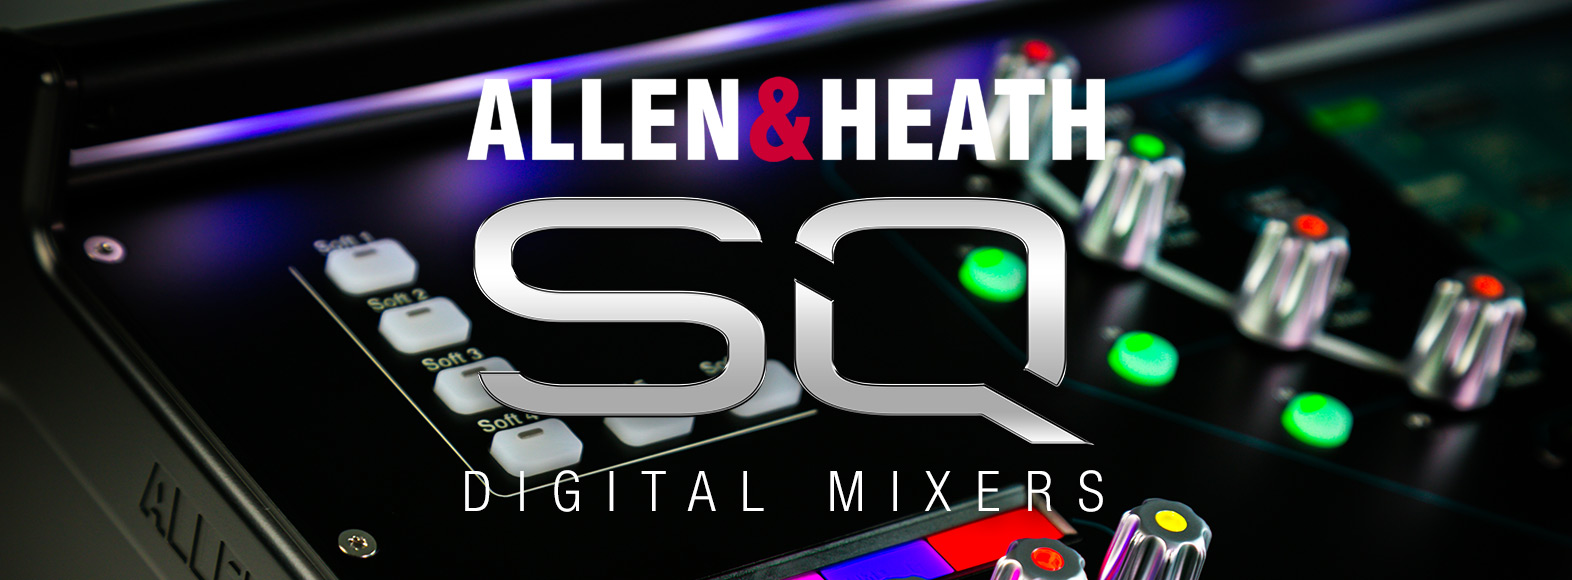 allen heath sq